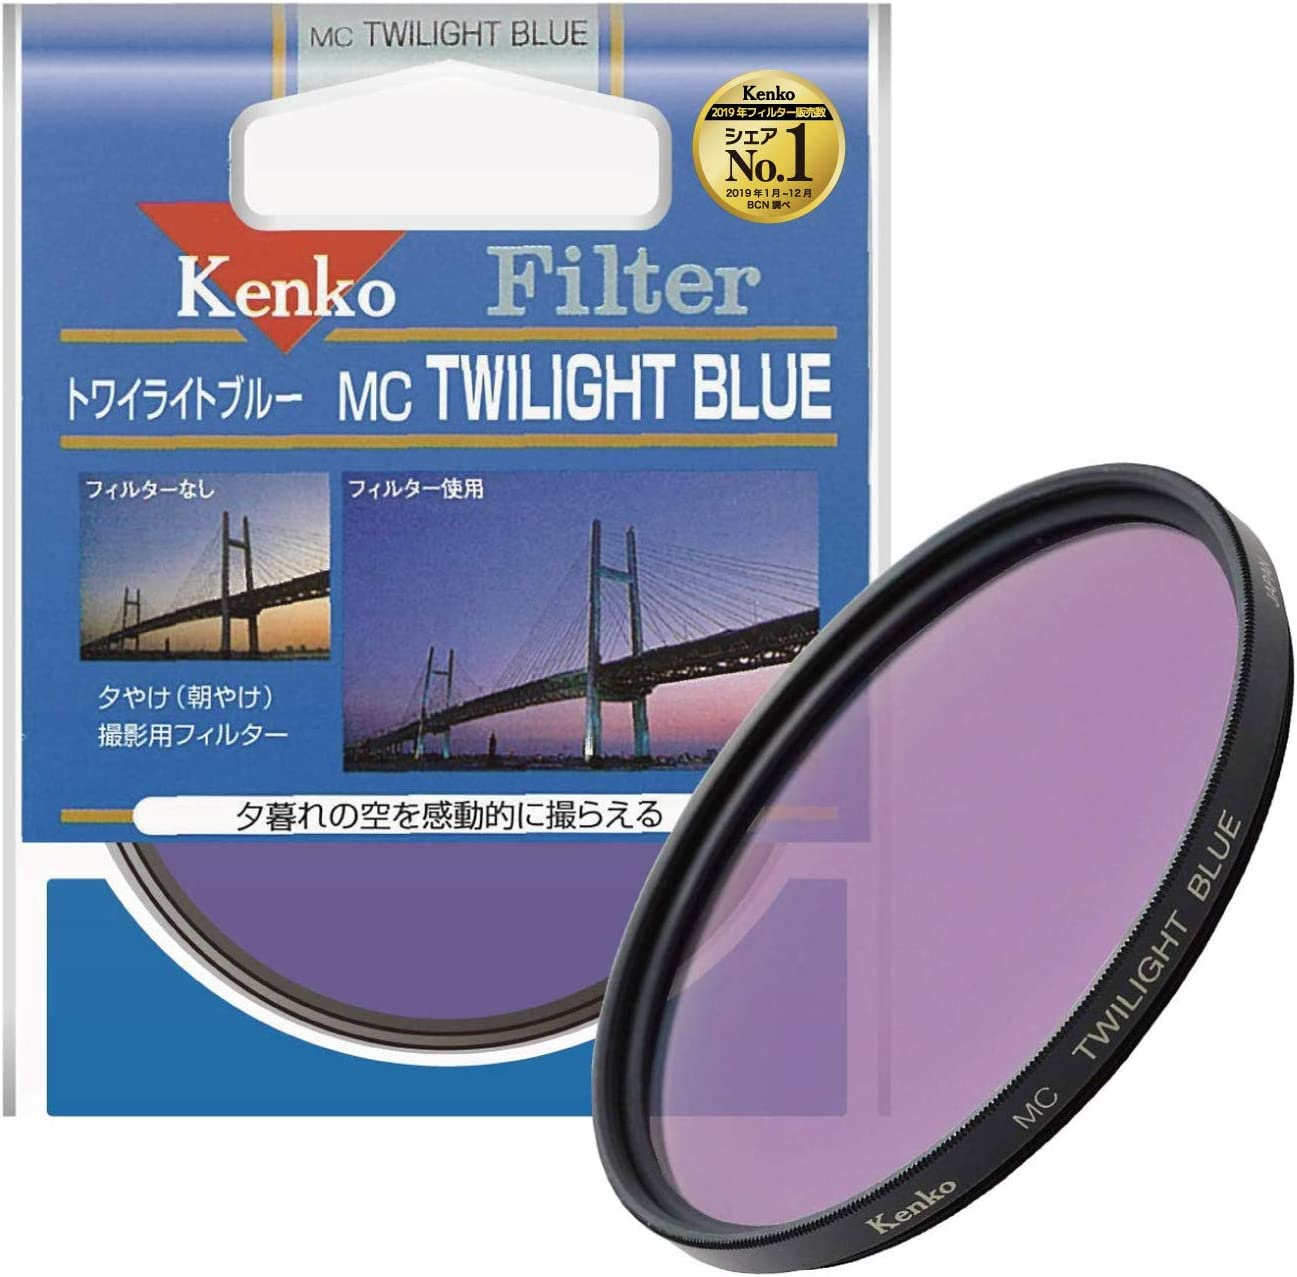 Kenko 77mm Twilight Red Multi-Coated Camera Lens Filters